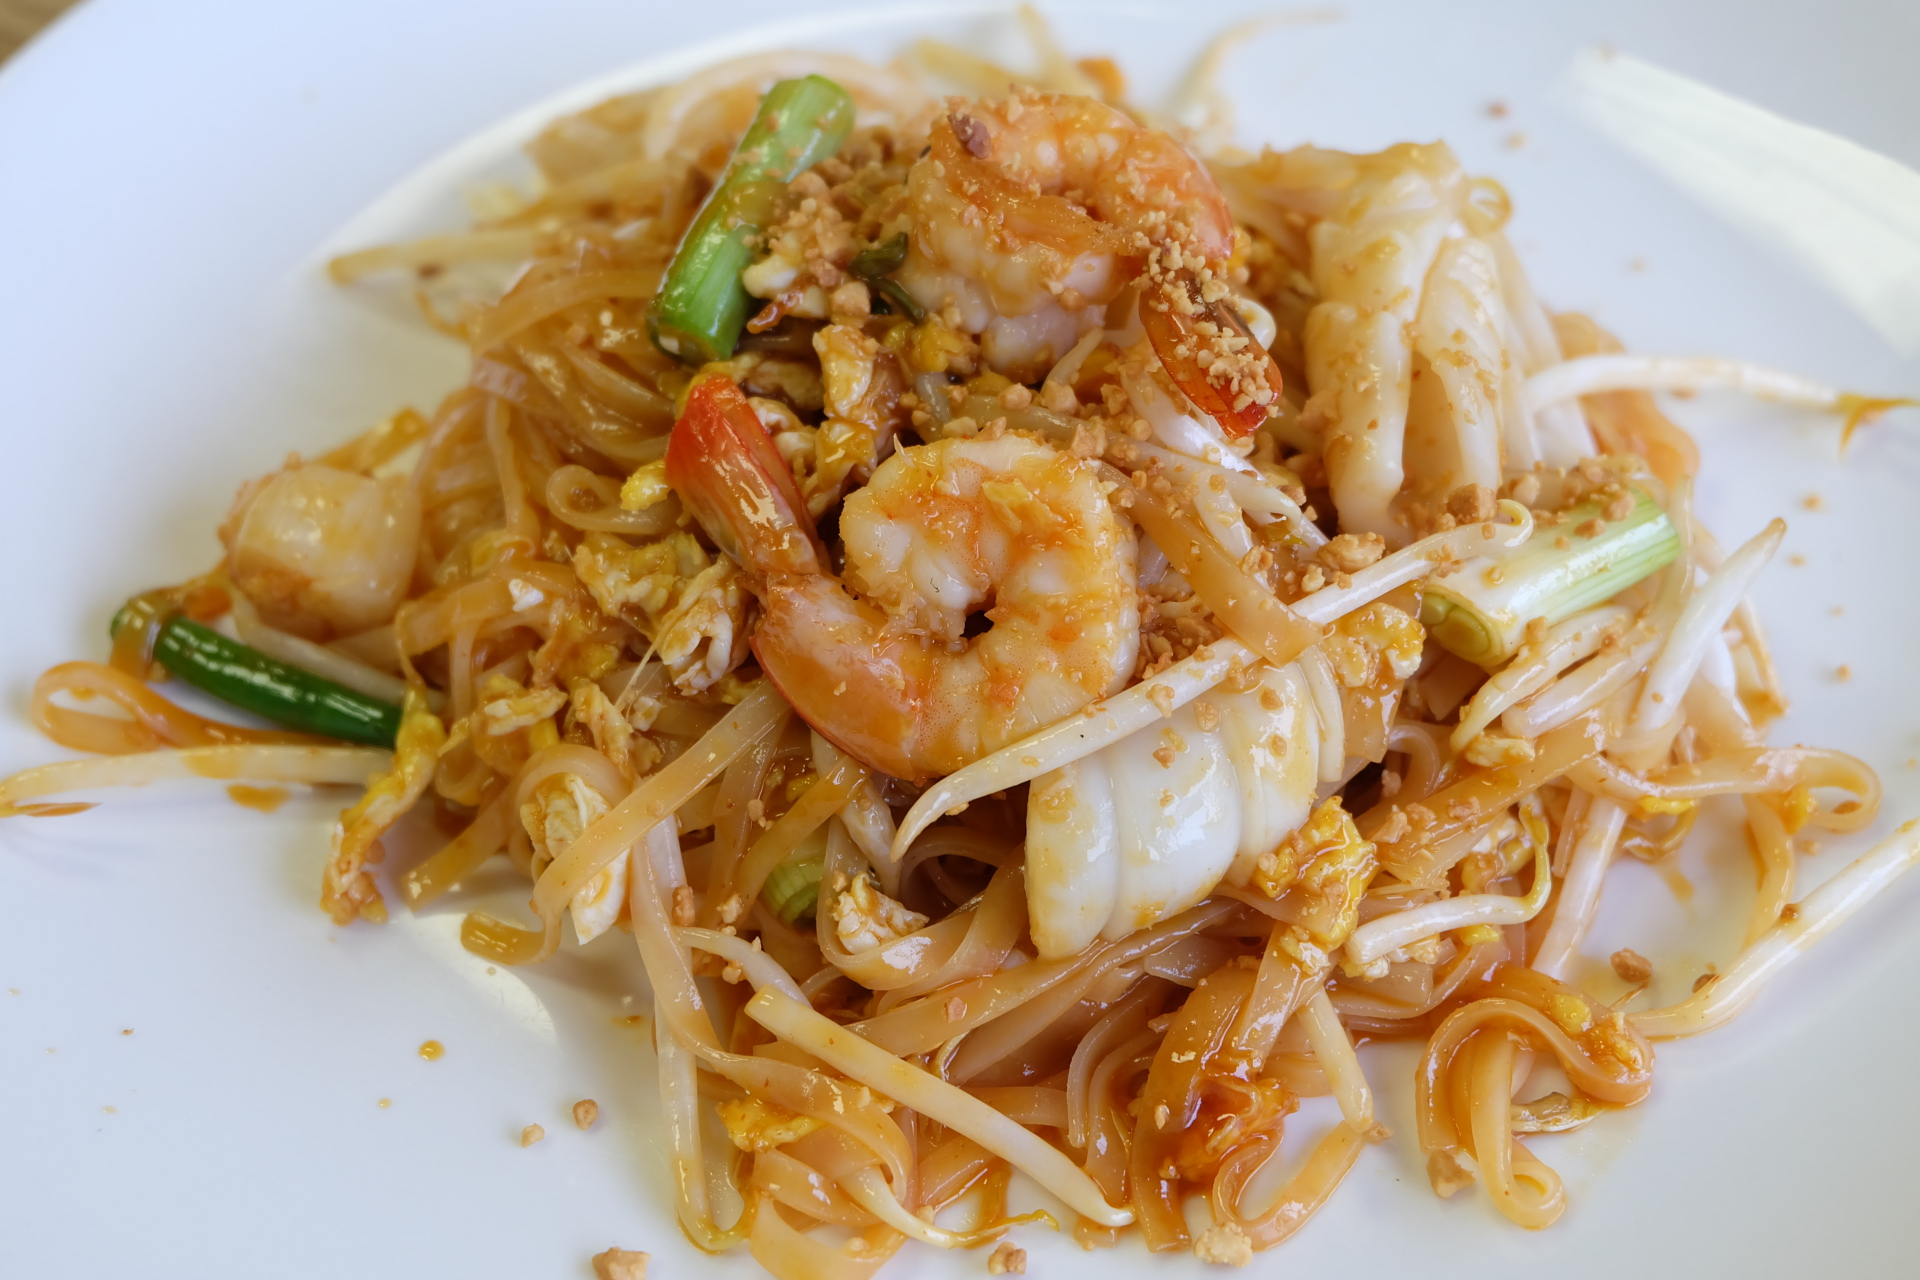 Country Pad Thai